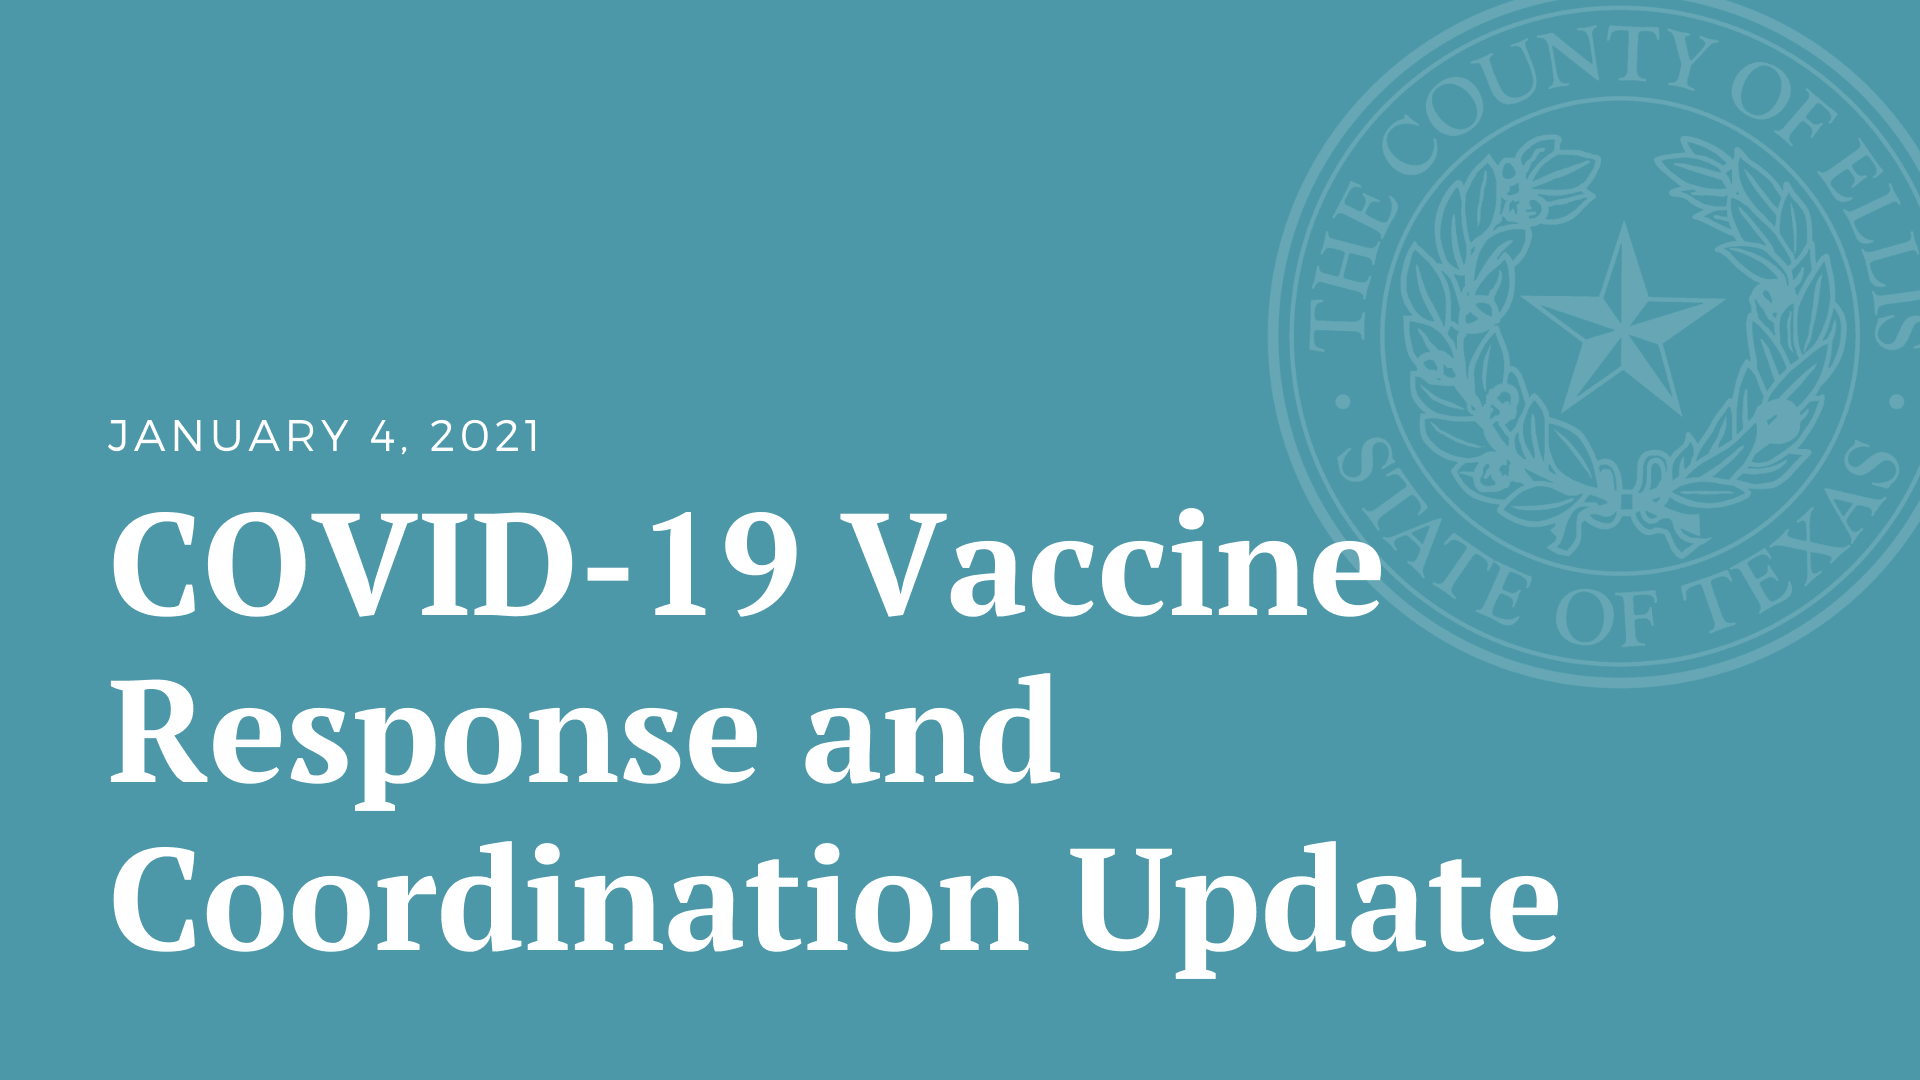 COVID-19 Vaccine Response and Coordination Update